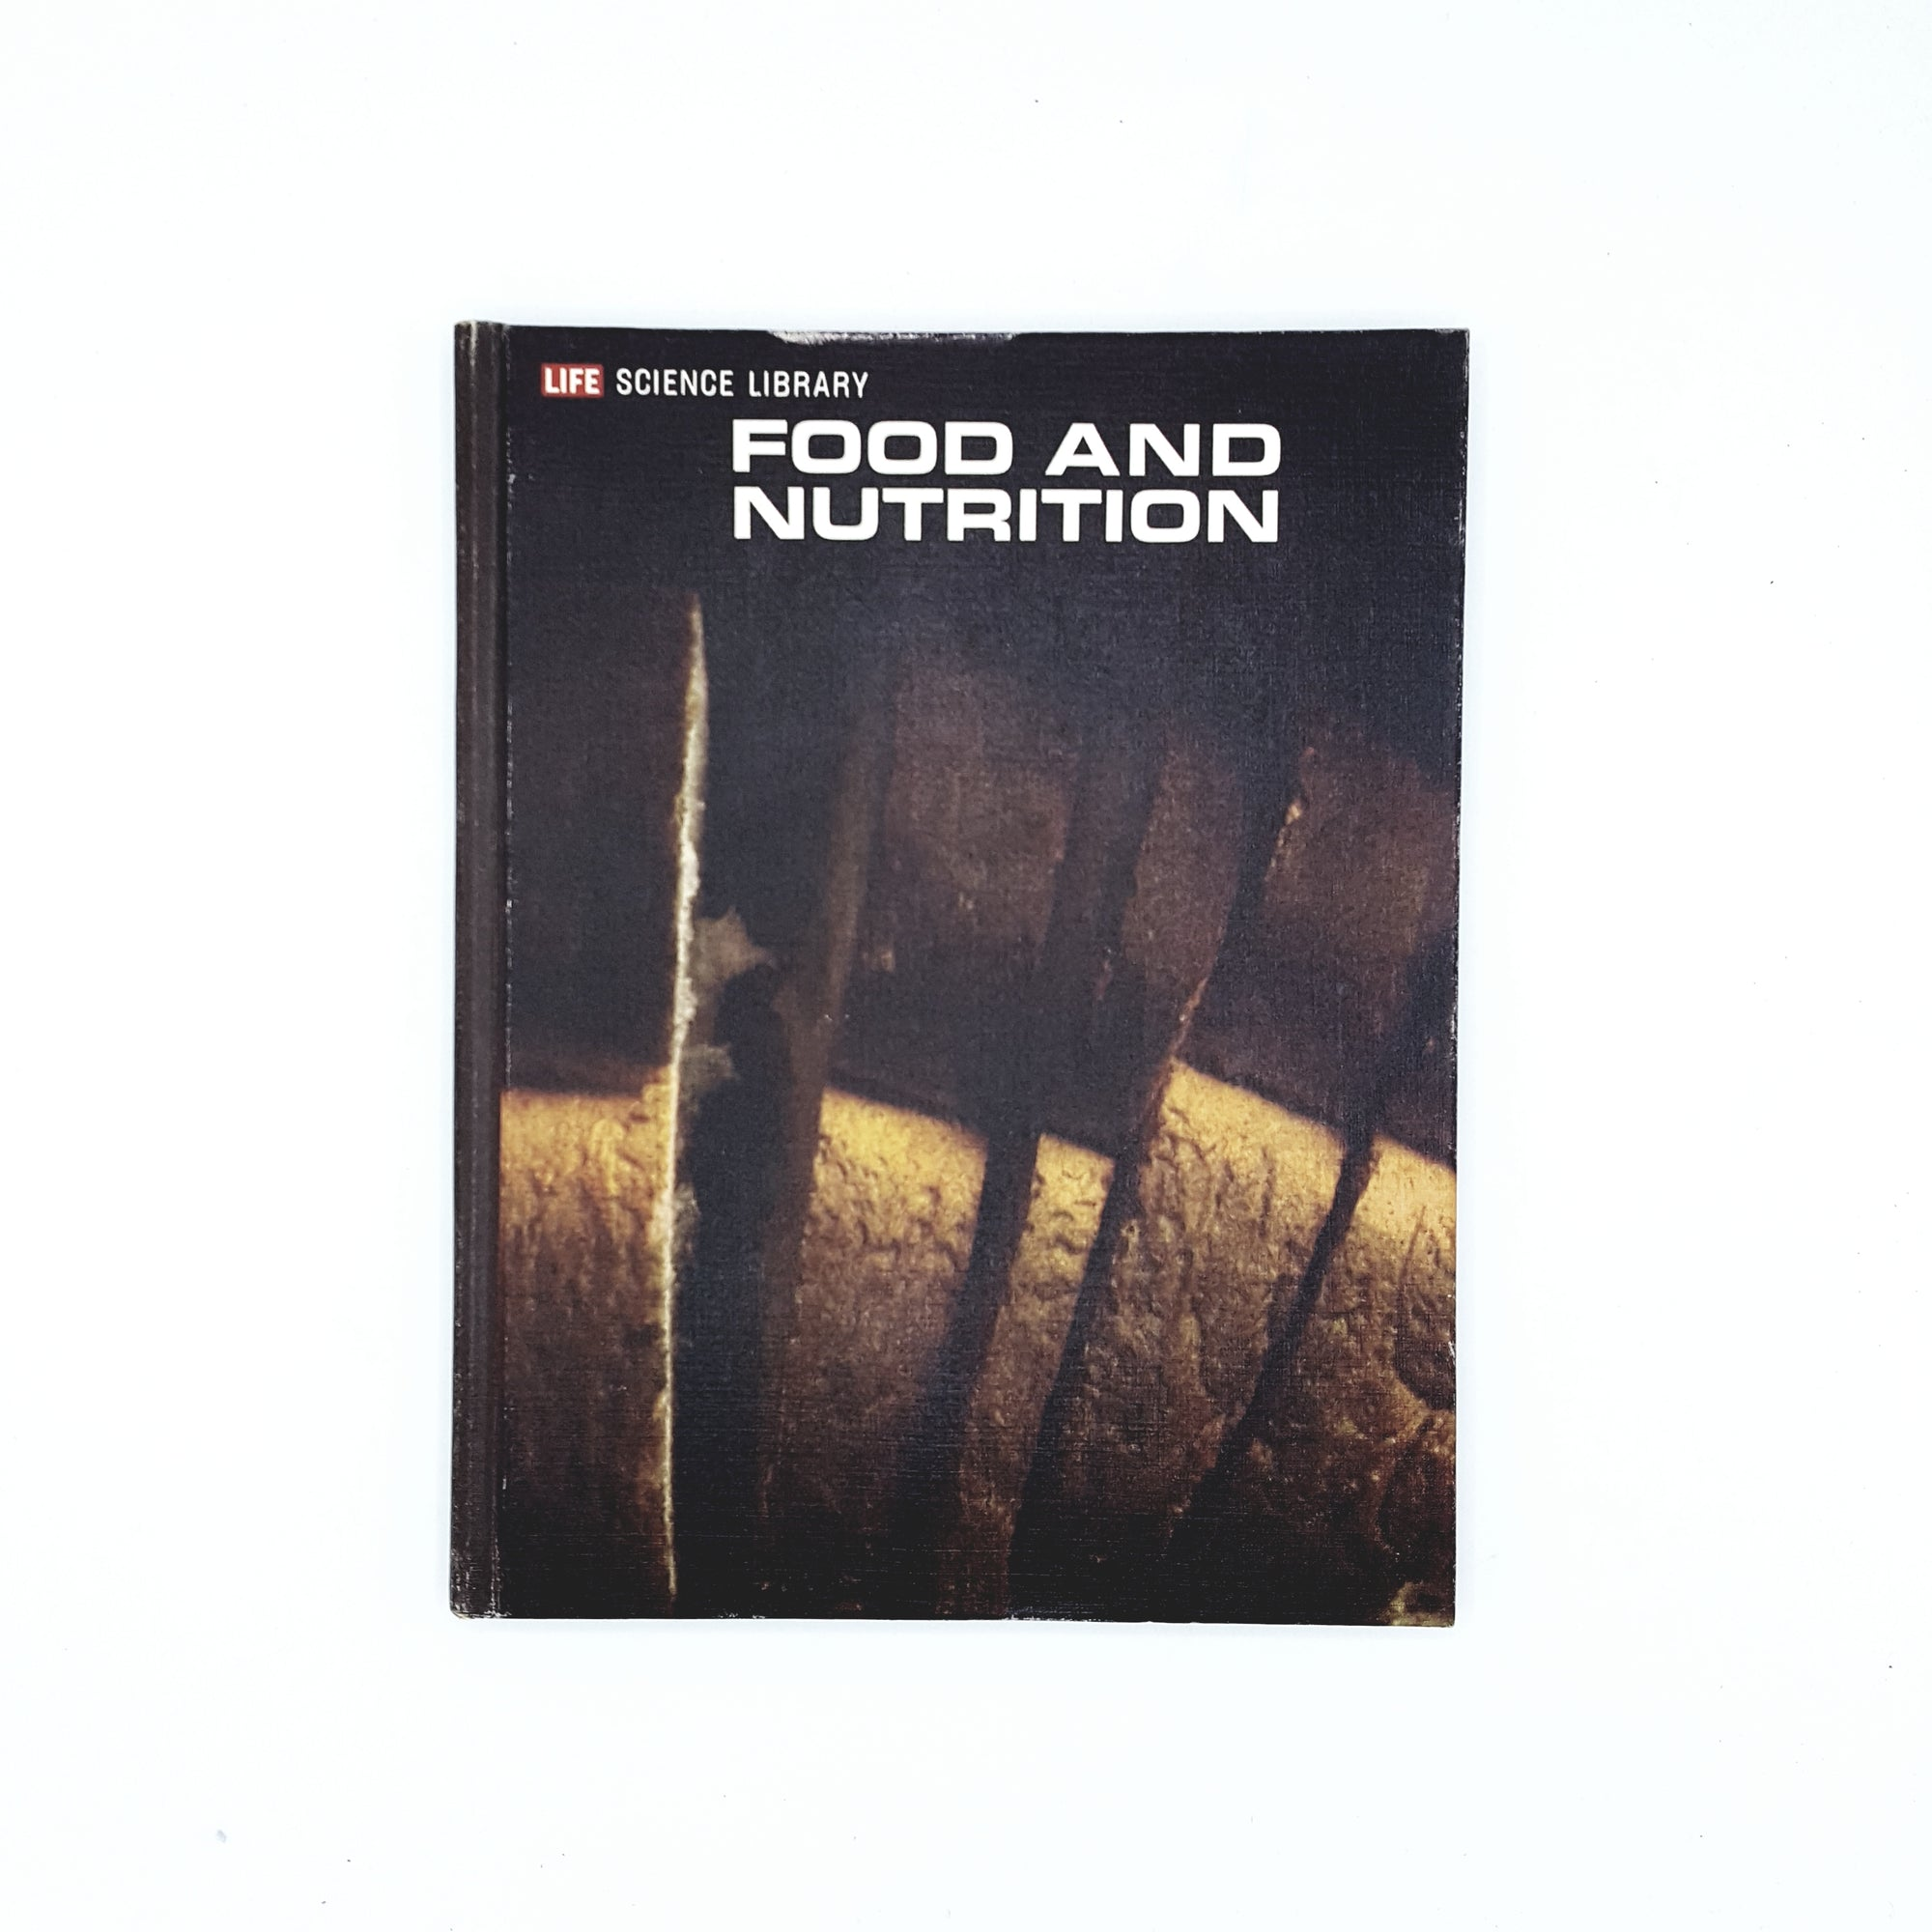 Life Science Library: Food and Nutrition 1973